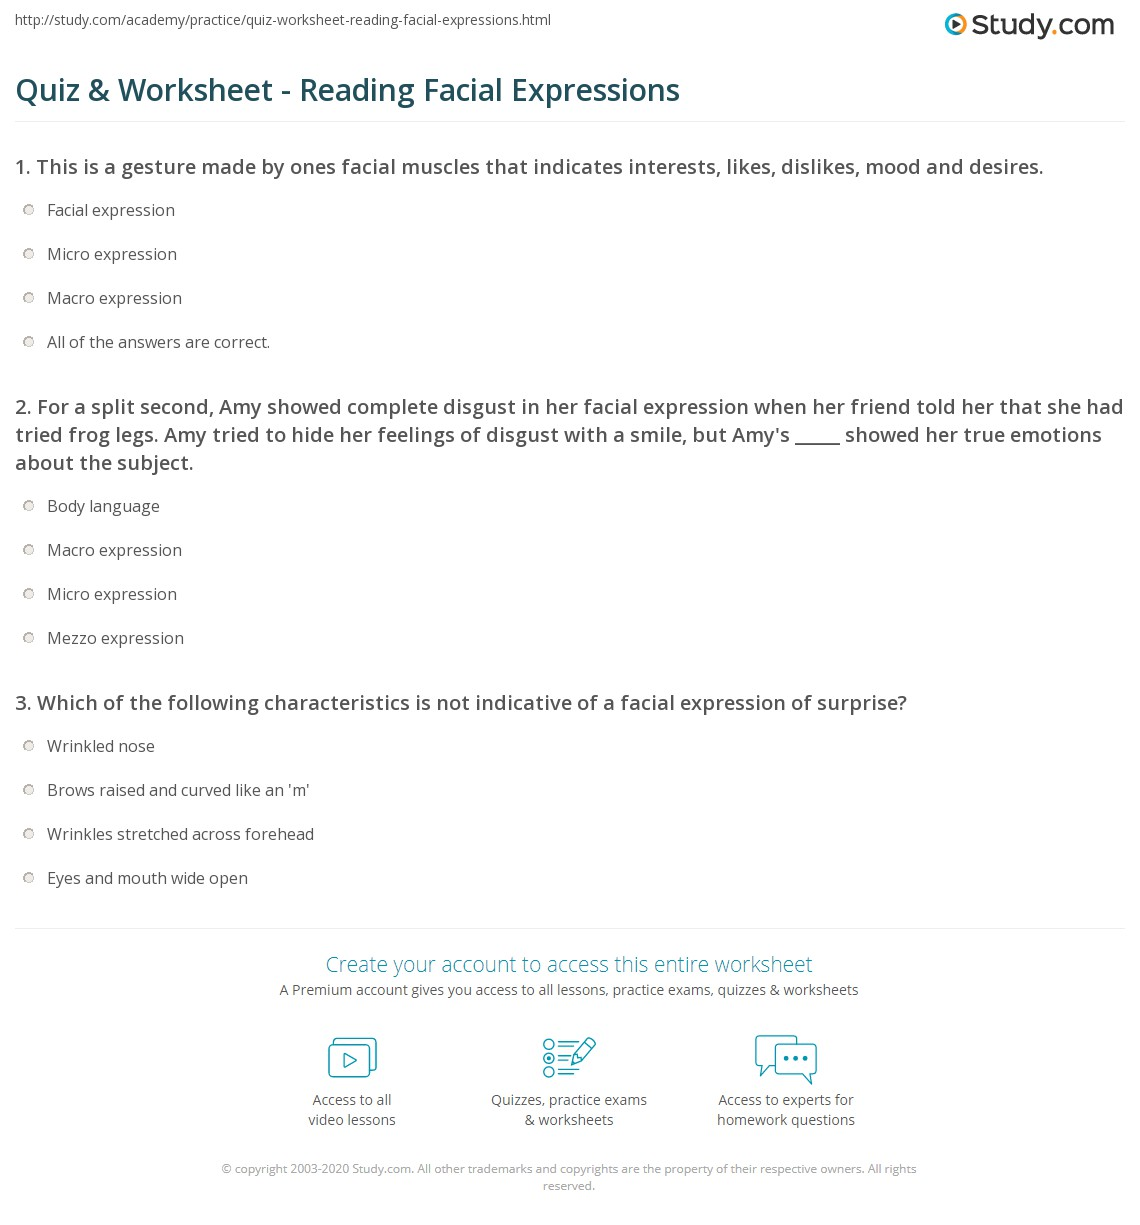 quiz worksheet reading facial expressions. Black Bedroom Furniture Sets. Home Design Ideas